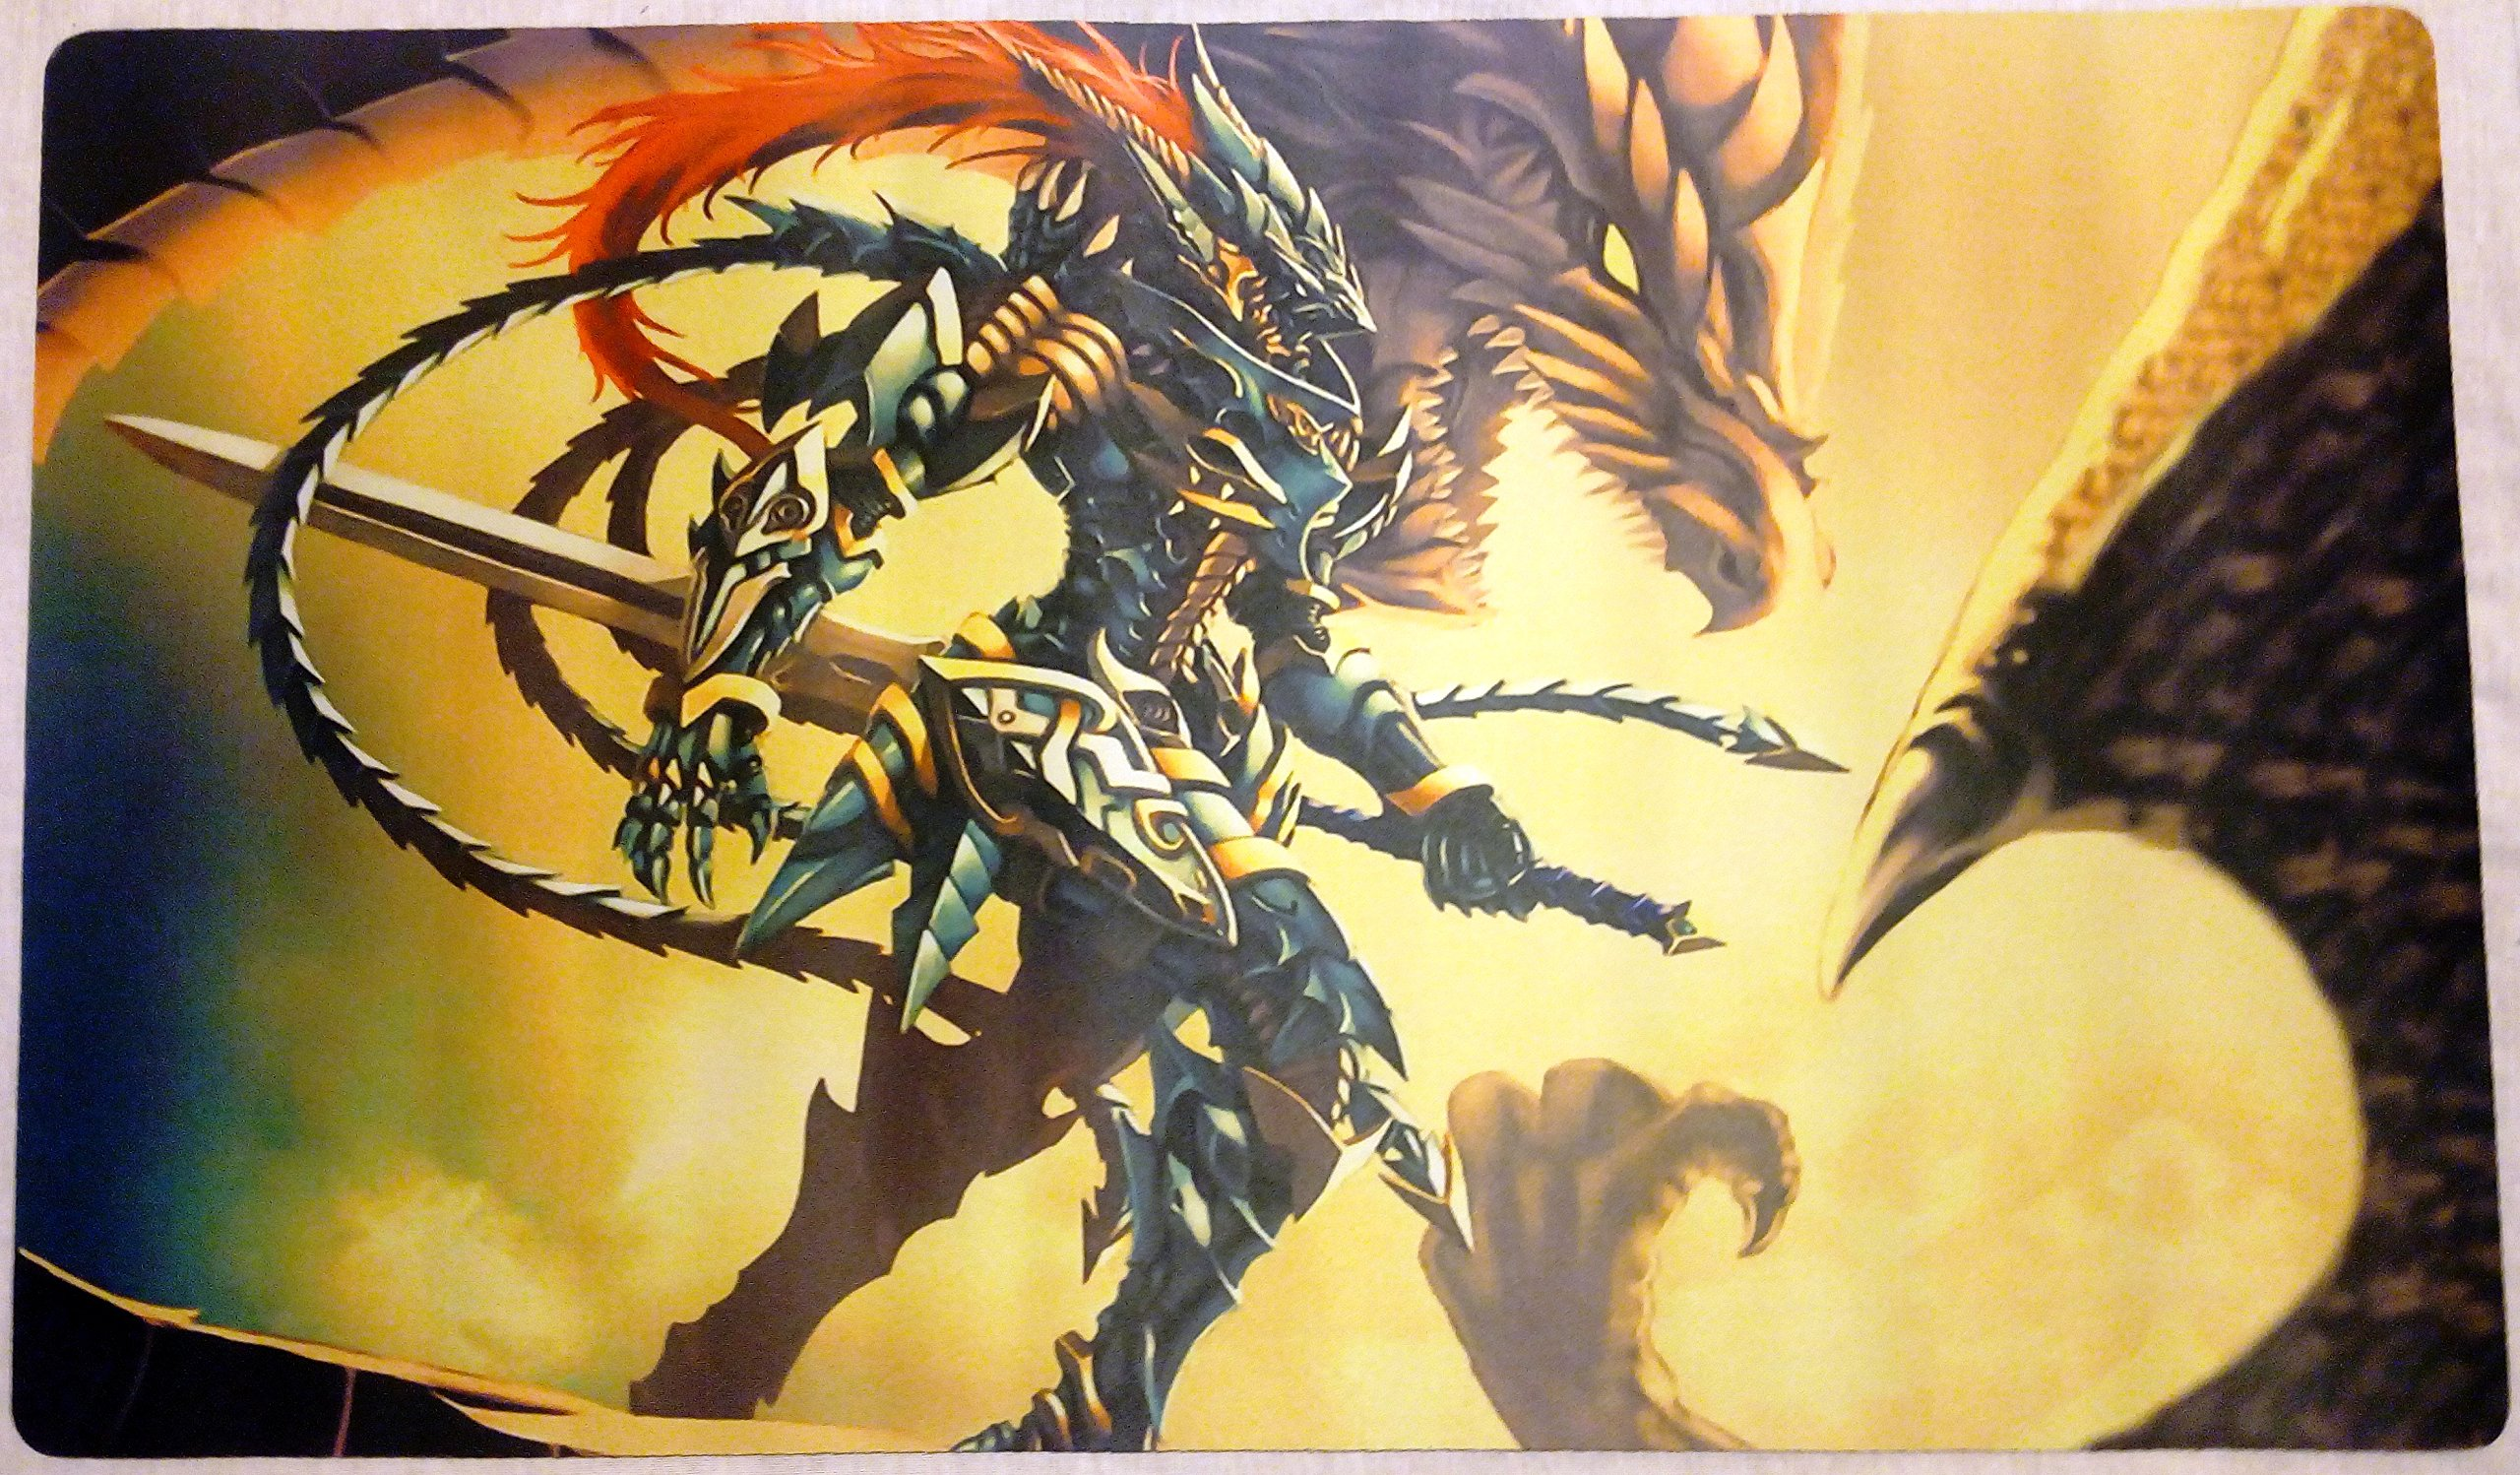 Black luster Soldier BLS yugioh TCG playmat, gamemat 24'' wide 14'' tall for trading card game smooth cloth surface rubber base